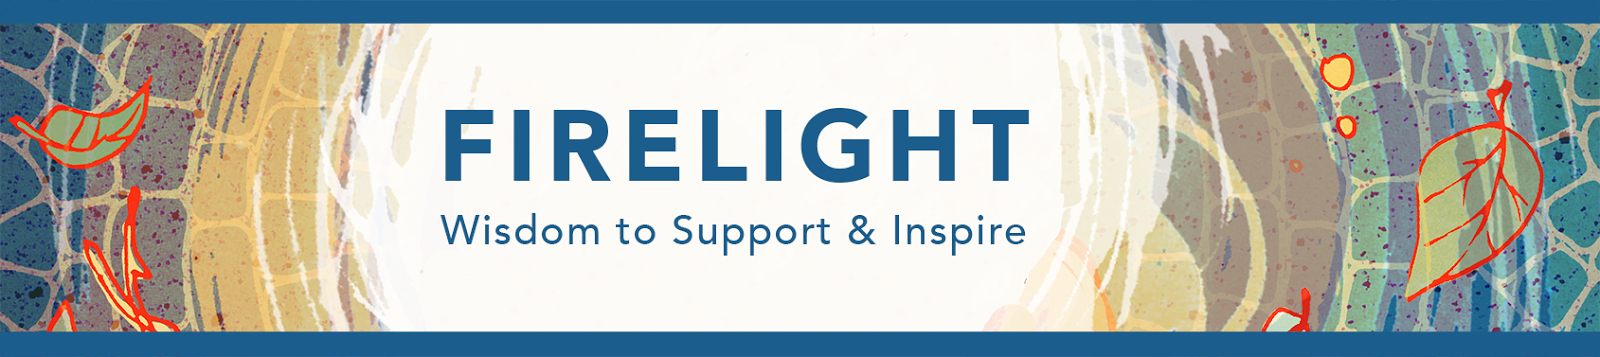 irelight-Banner.png